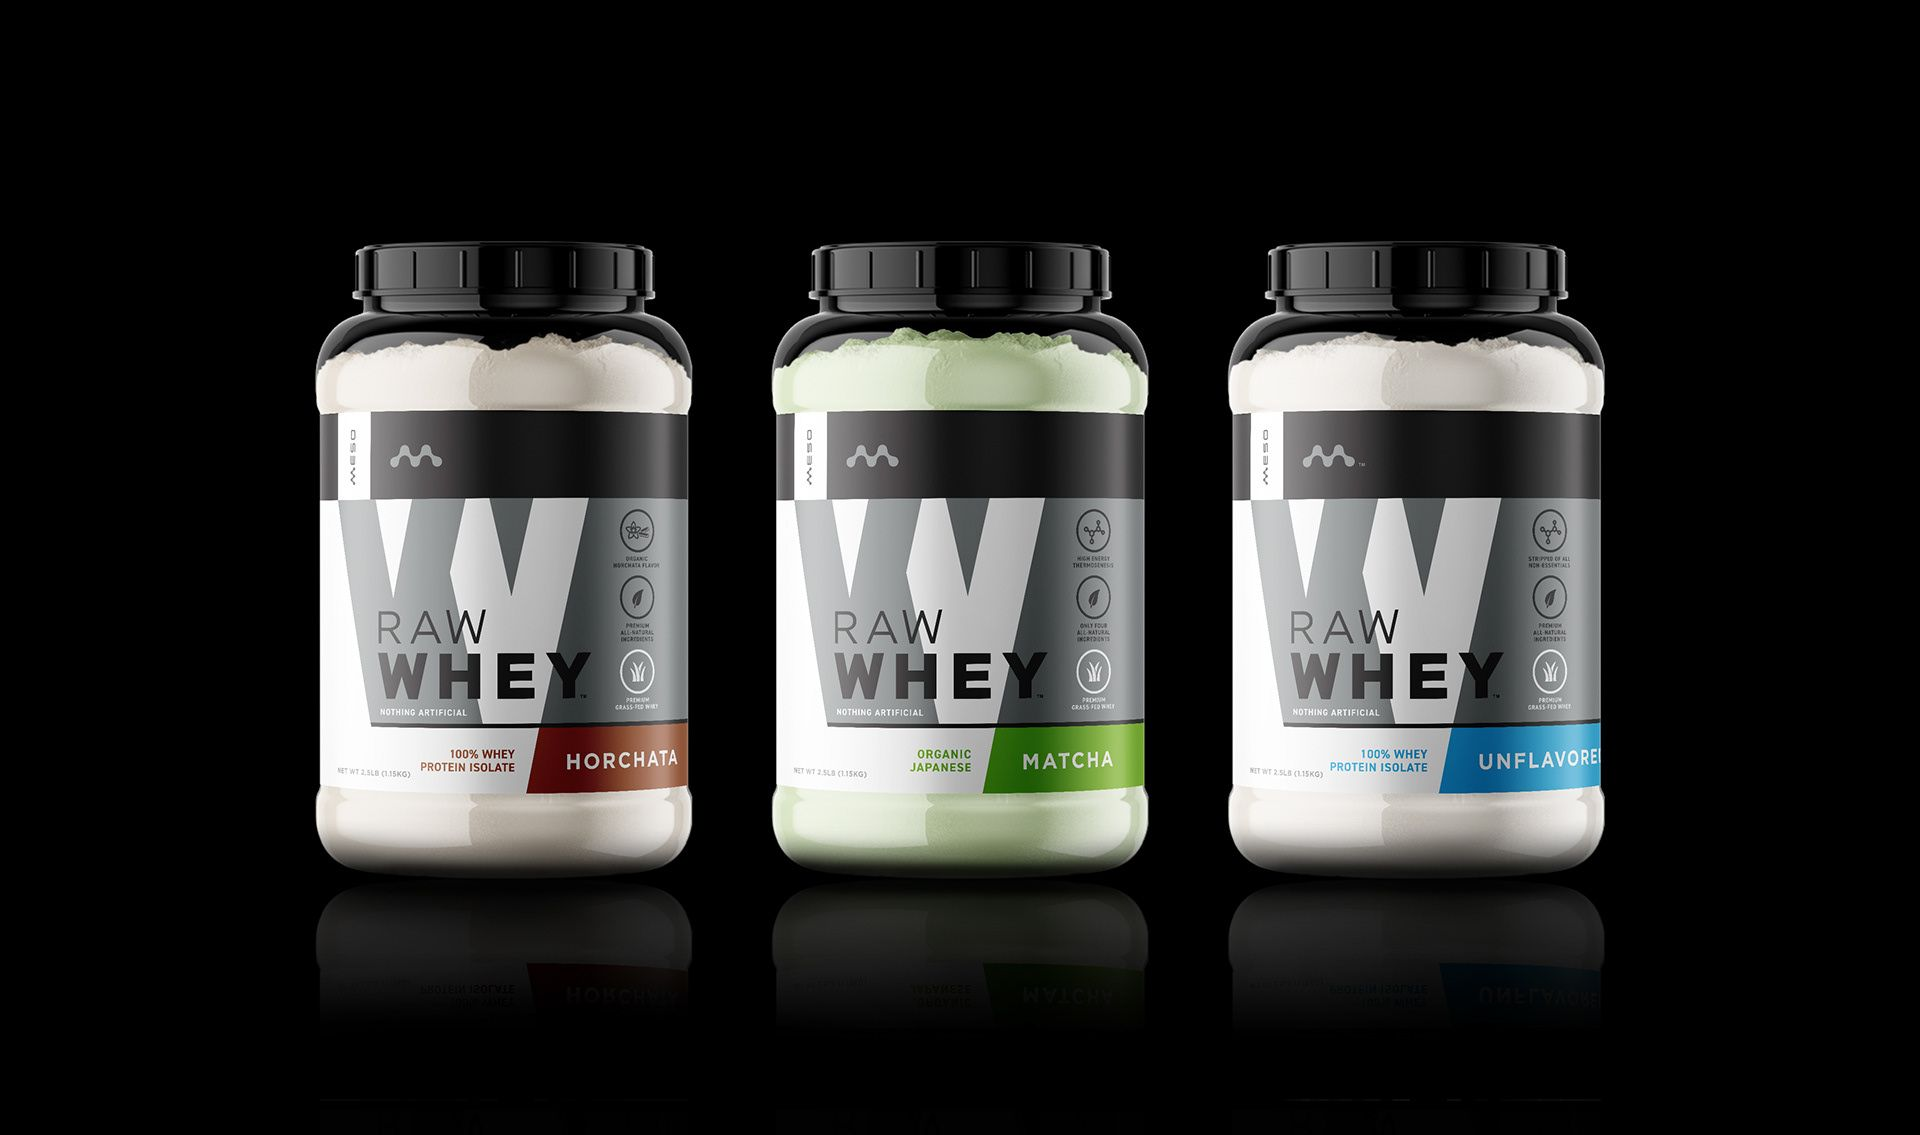 Meso Whey Protein Elite Sports Nutrition By Farm Design Farmdesign Mesonutrition Proteinpowder Fitn Health Supplements Whey Protein Athlete Nutrition